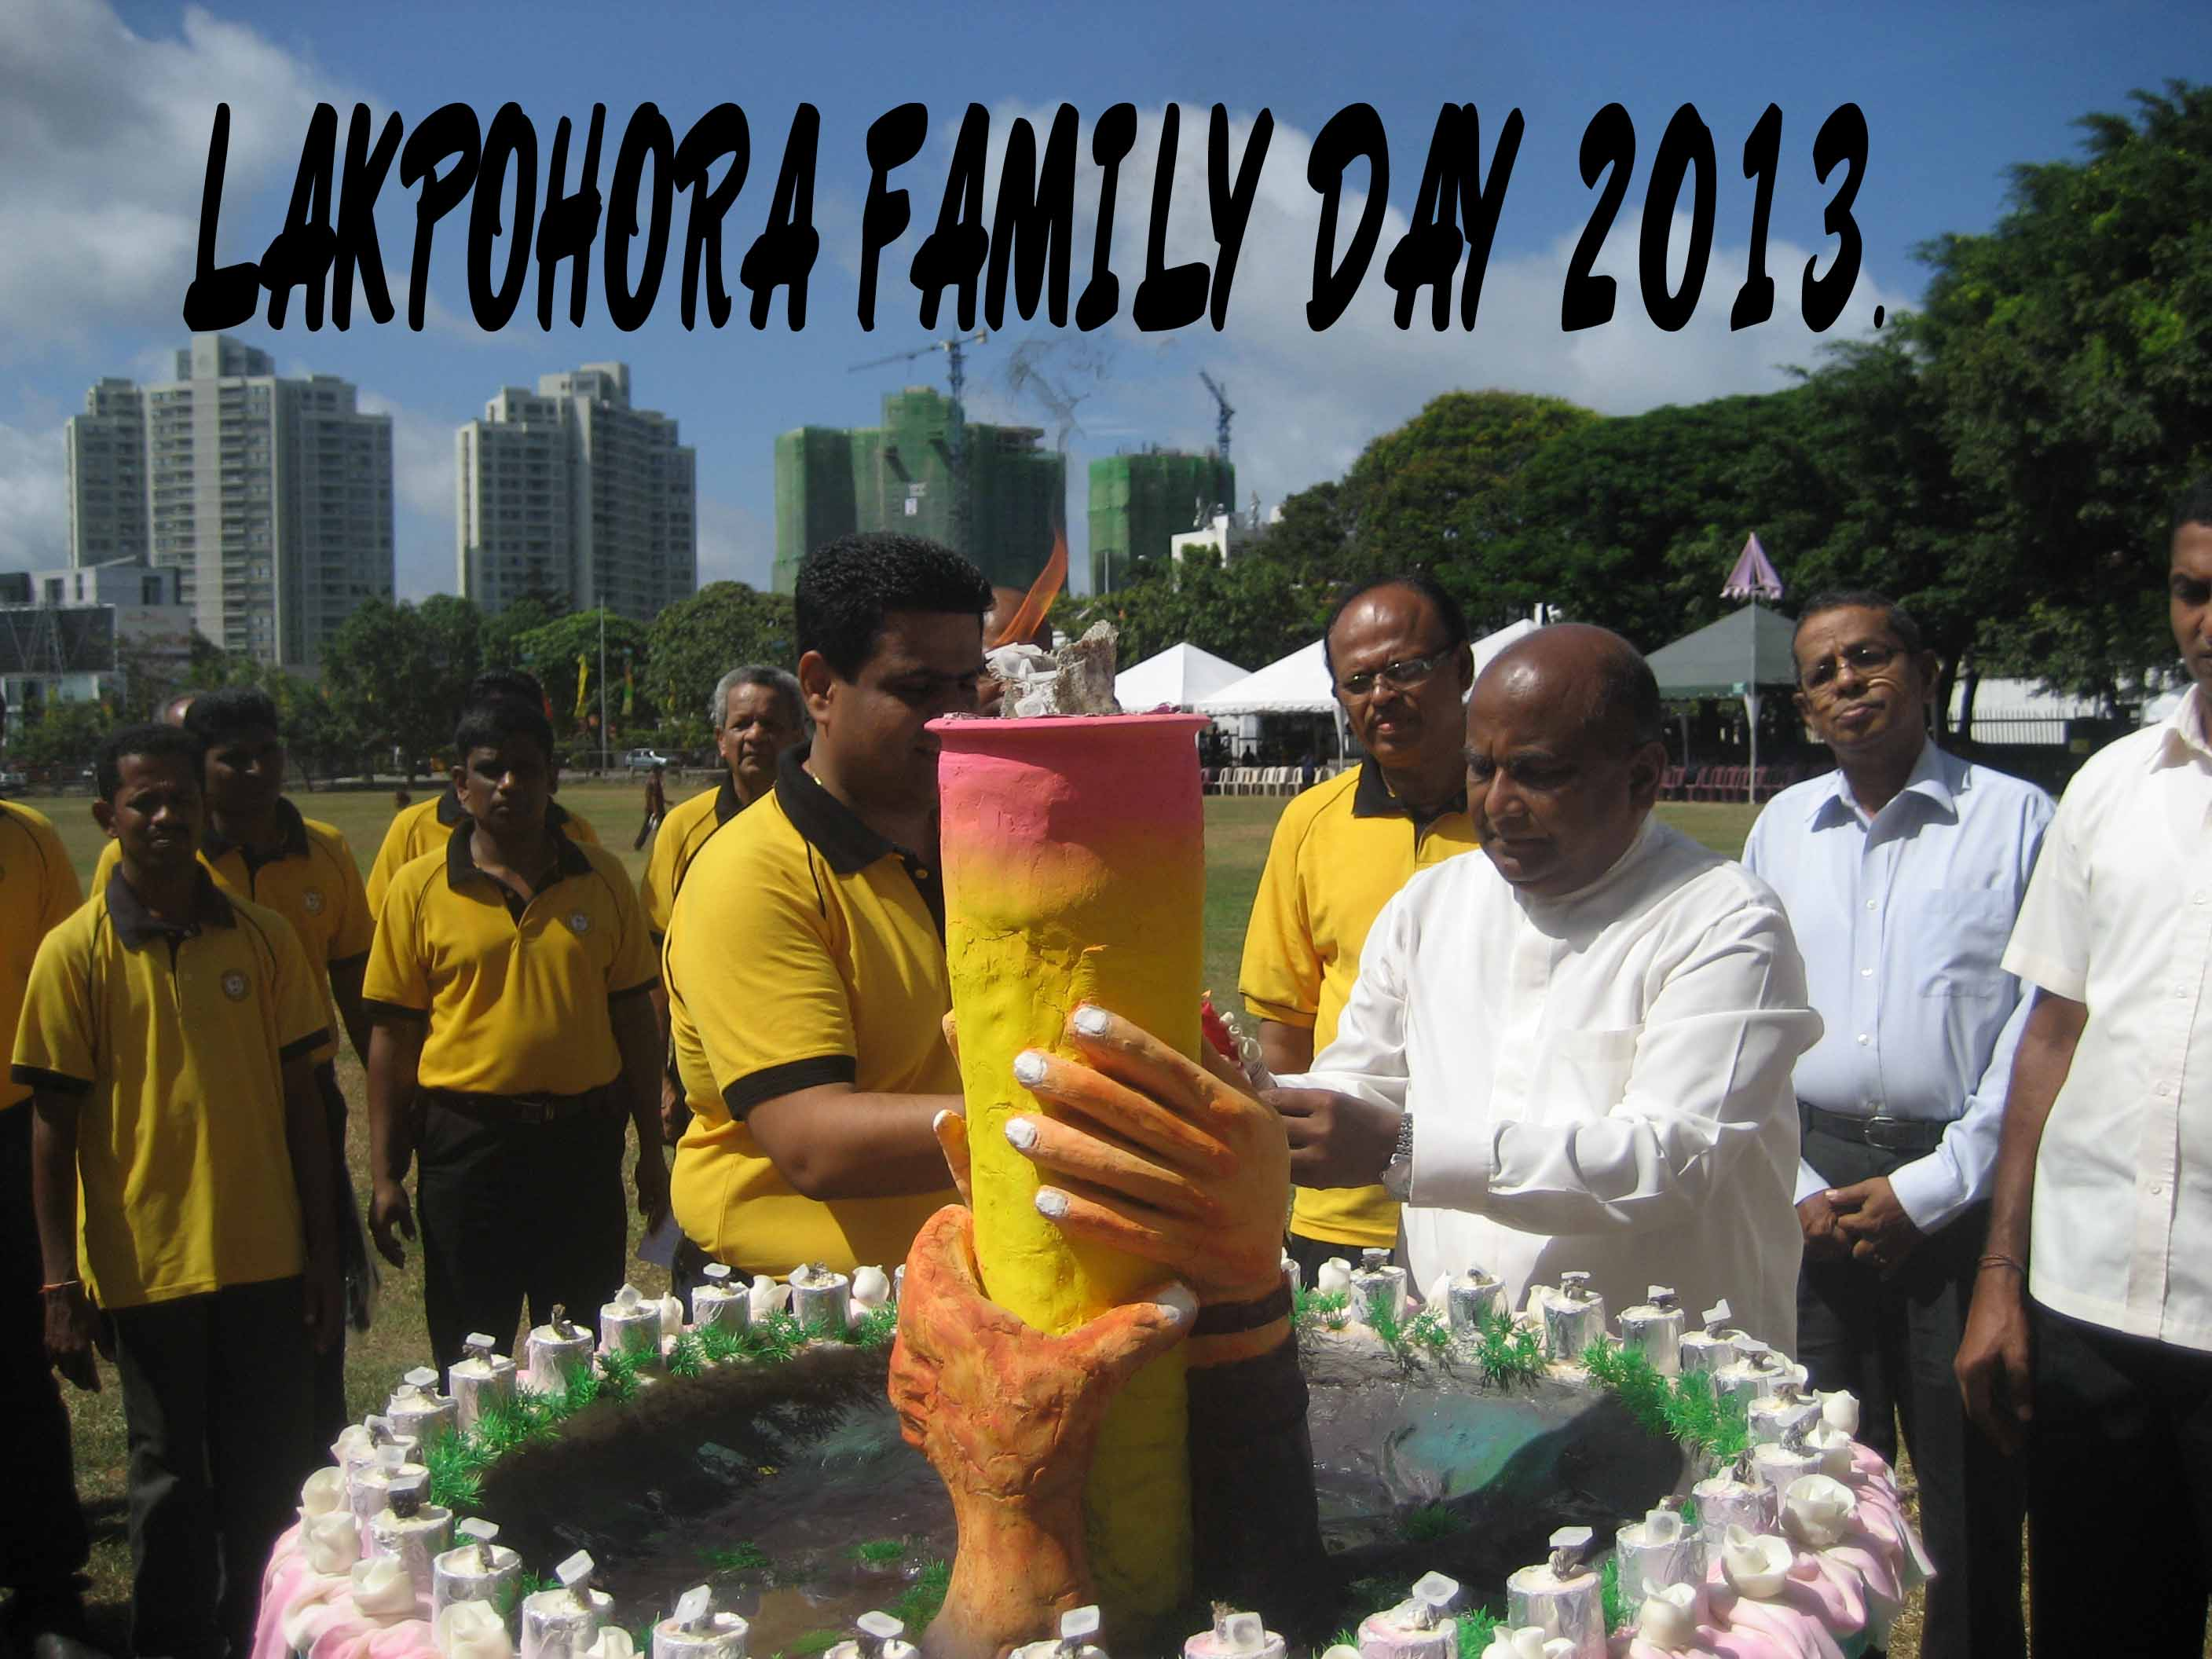 Lakpohora Family Day 2013